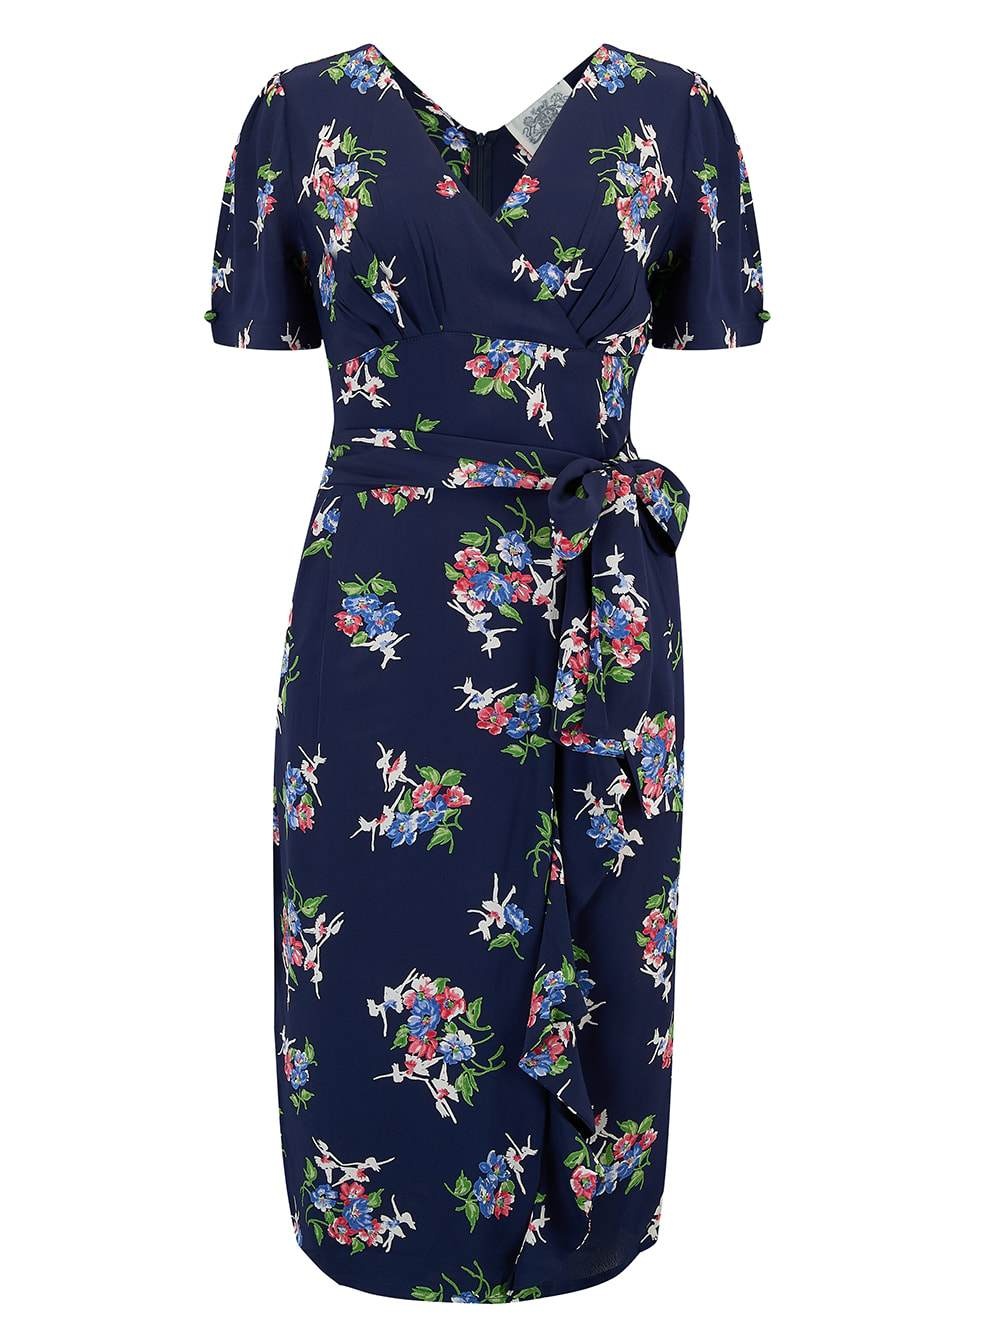 """Lilian"" Dress in Navy Floral Dancer by The Seamstress of Bloomsbury, Classic & Authentic 1940s Vintage Style"